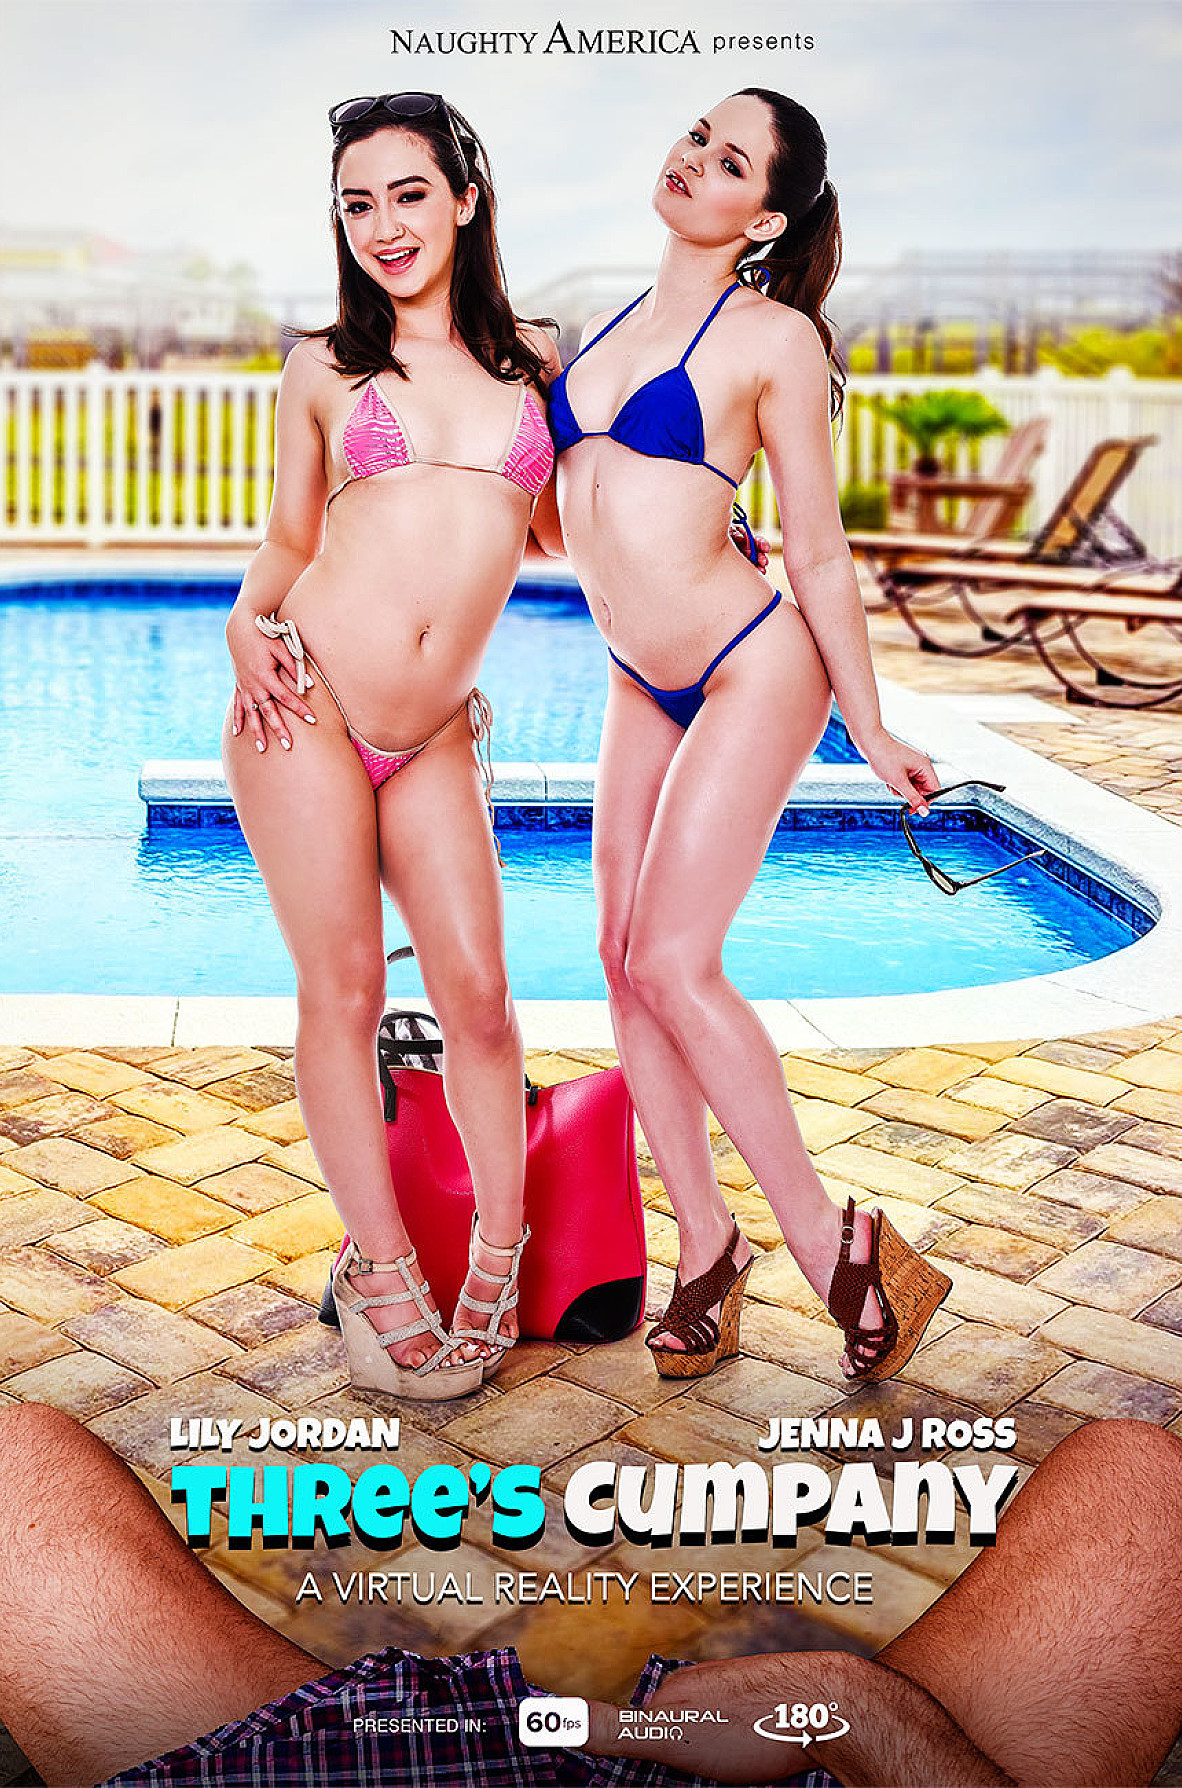 Watch Jenna J Ross, Lily Jordan and Charles Dera VR video in Naughty America